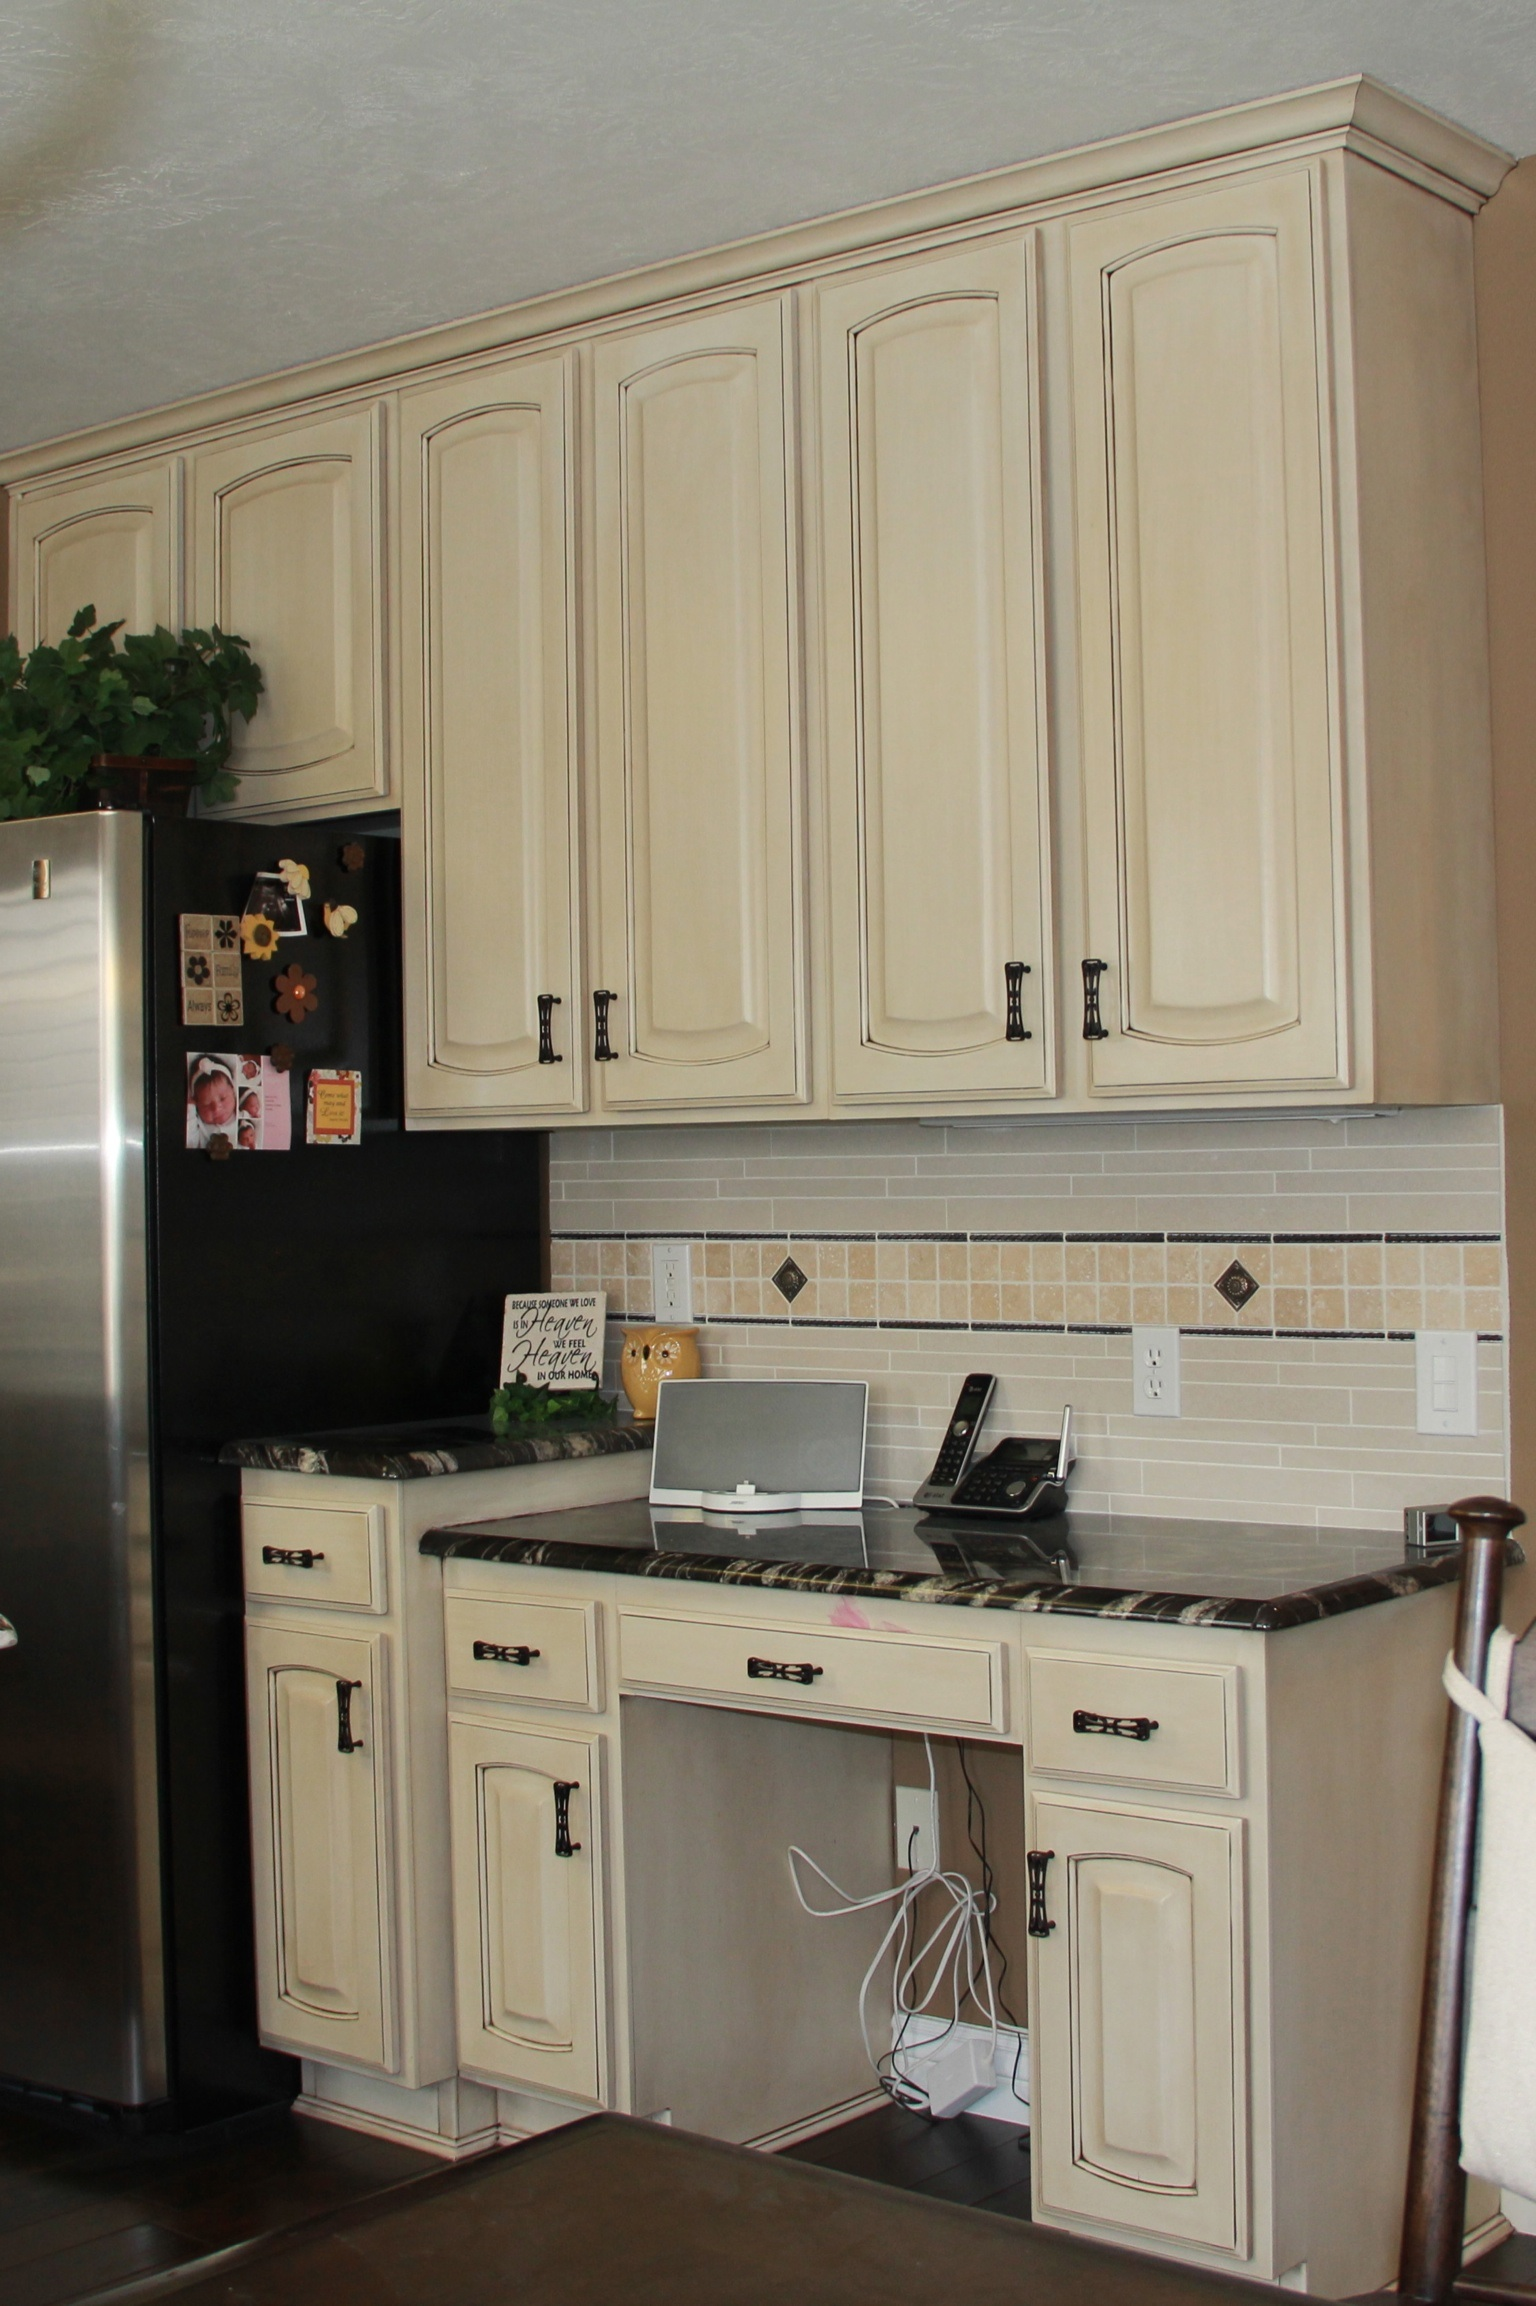 Antique White Kitchen Cabinets with Black Countertops